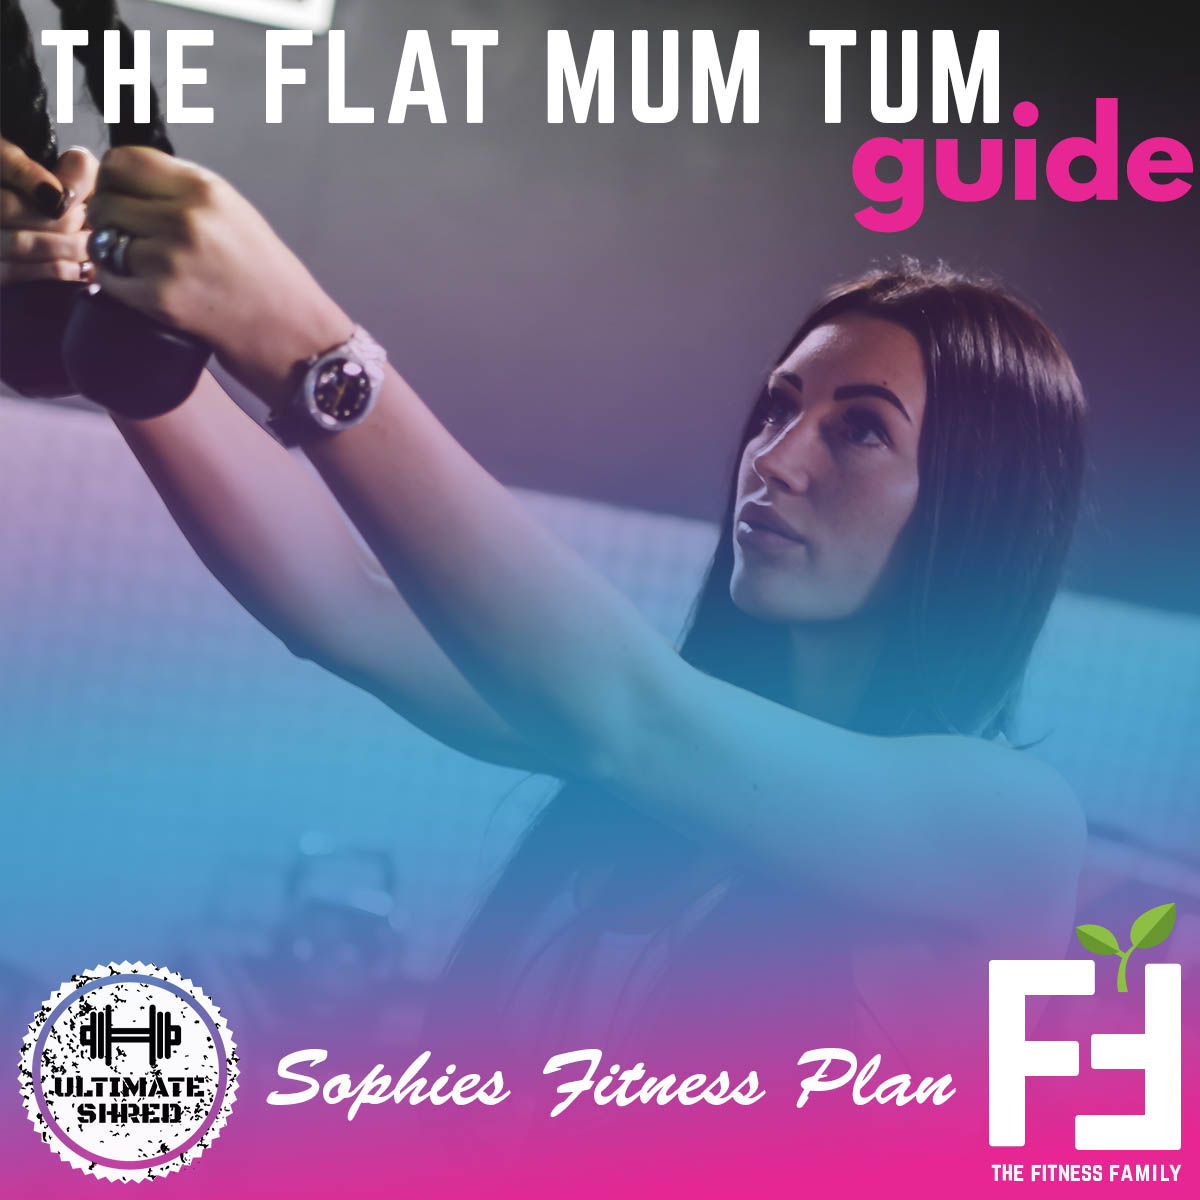 The Flat Mum Tum Guide